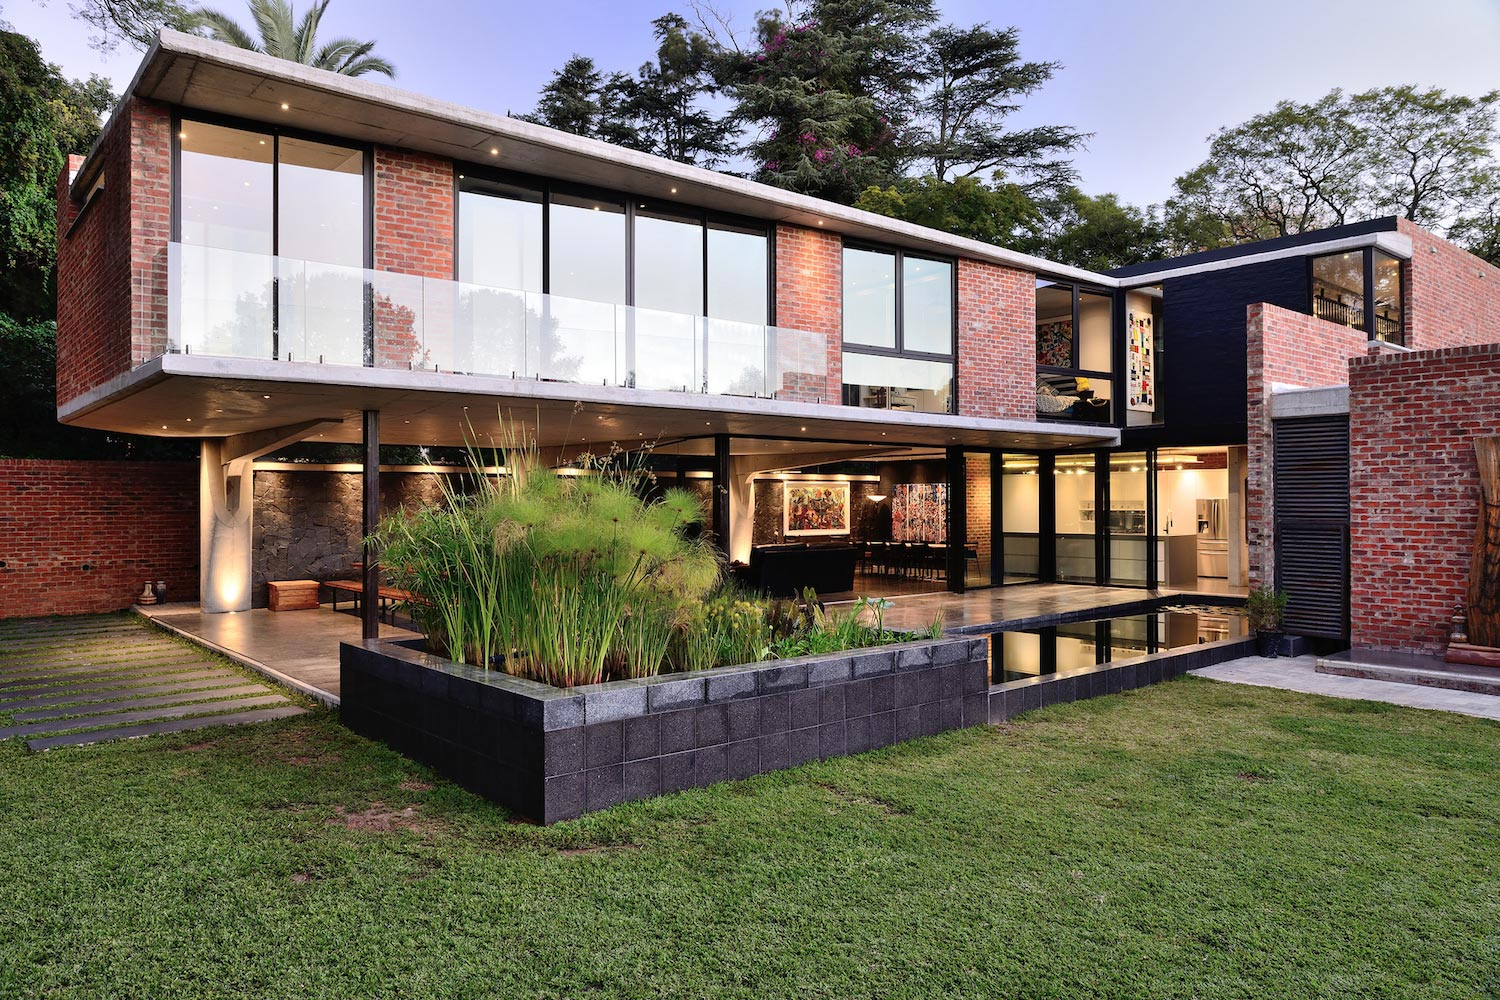 House sher by eftychis architects concrete and facebrick for Face brick home designs